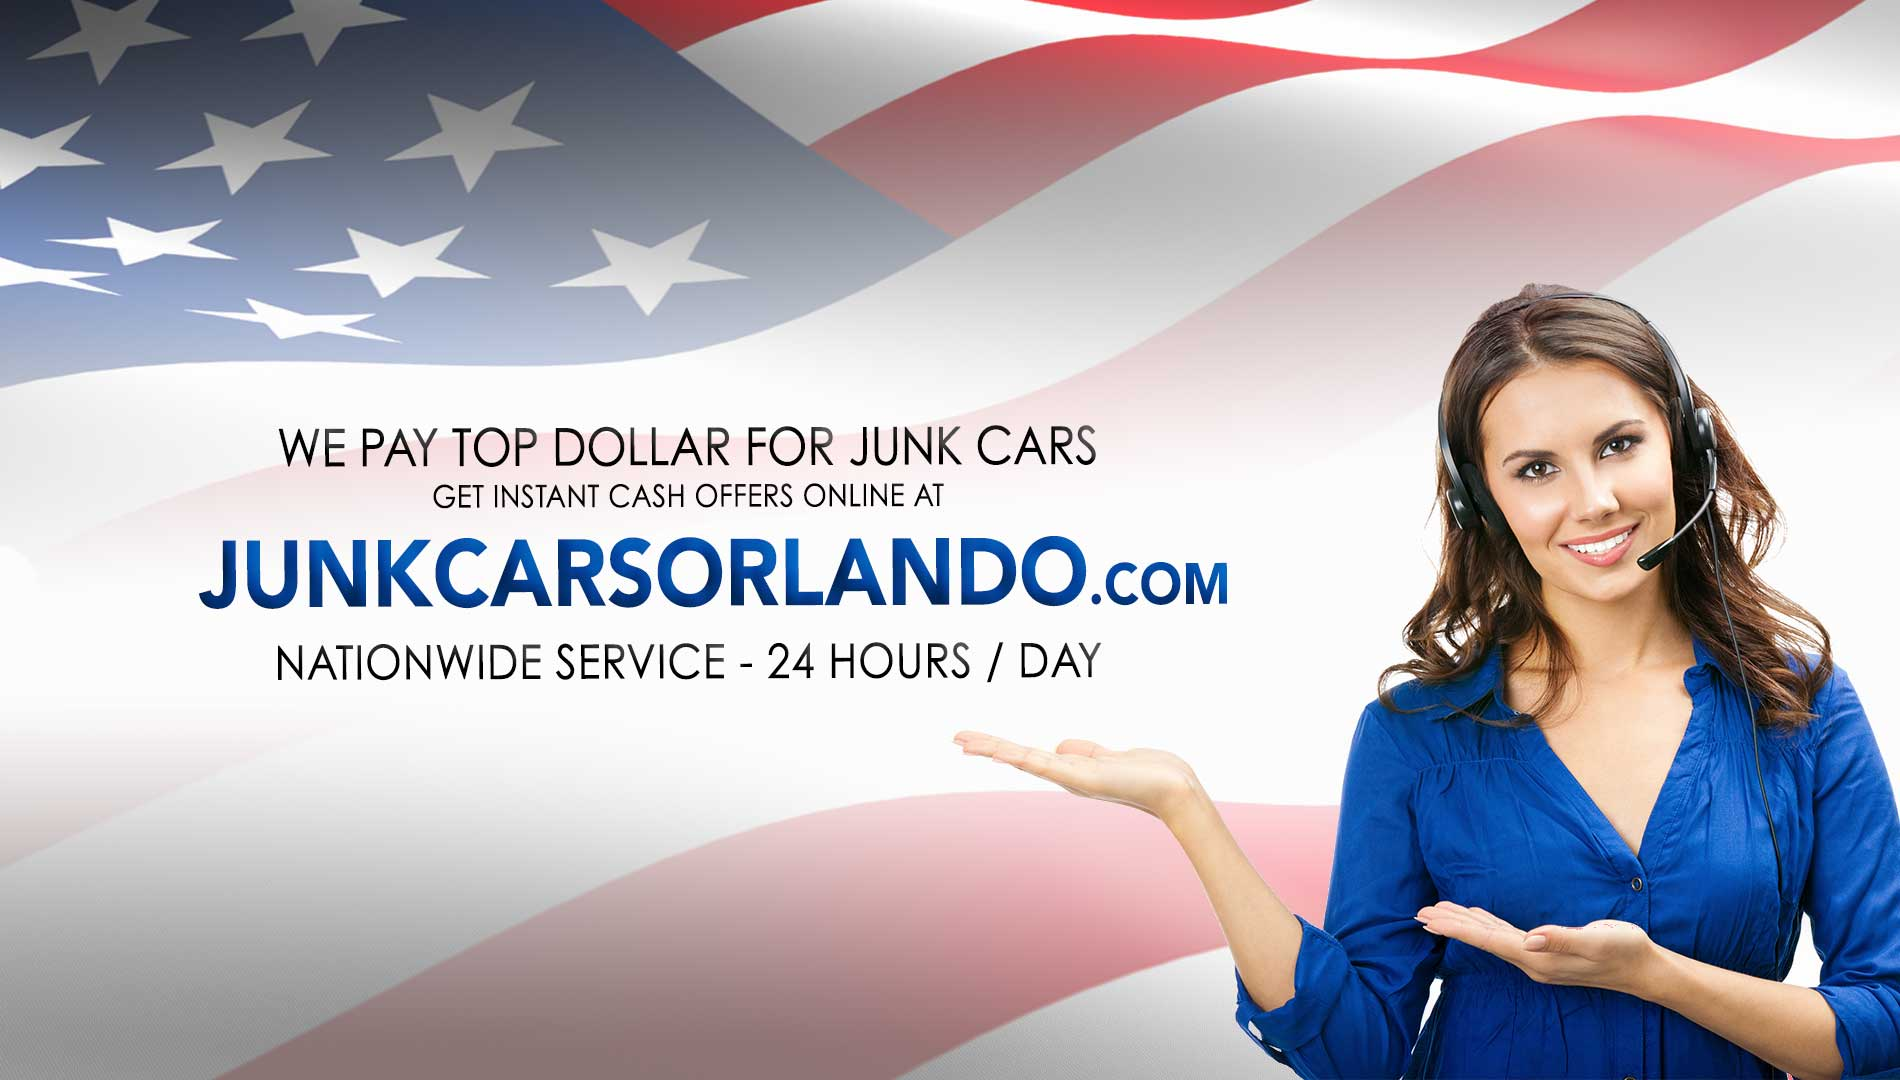 About us | Junk Cars Orlando